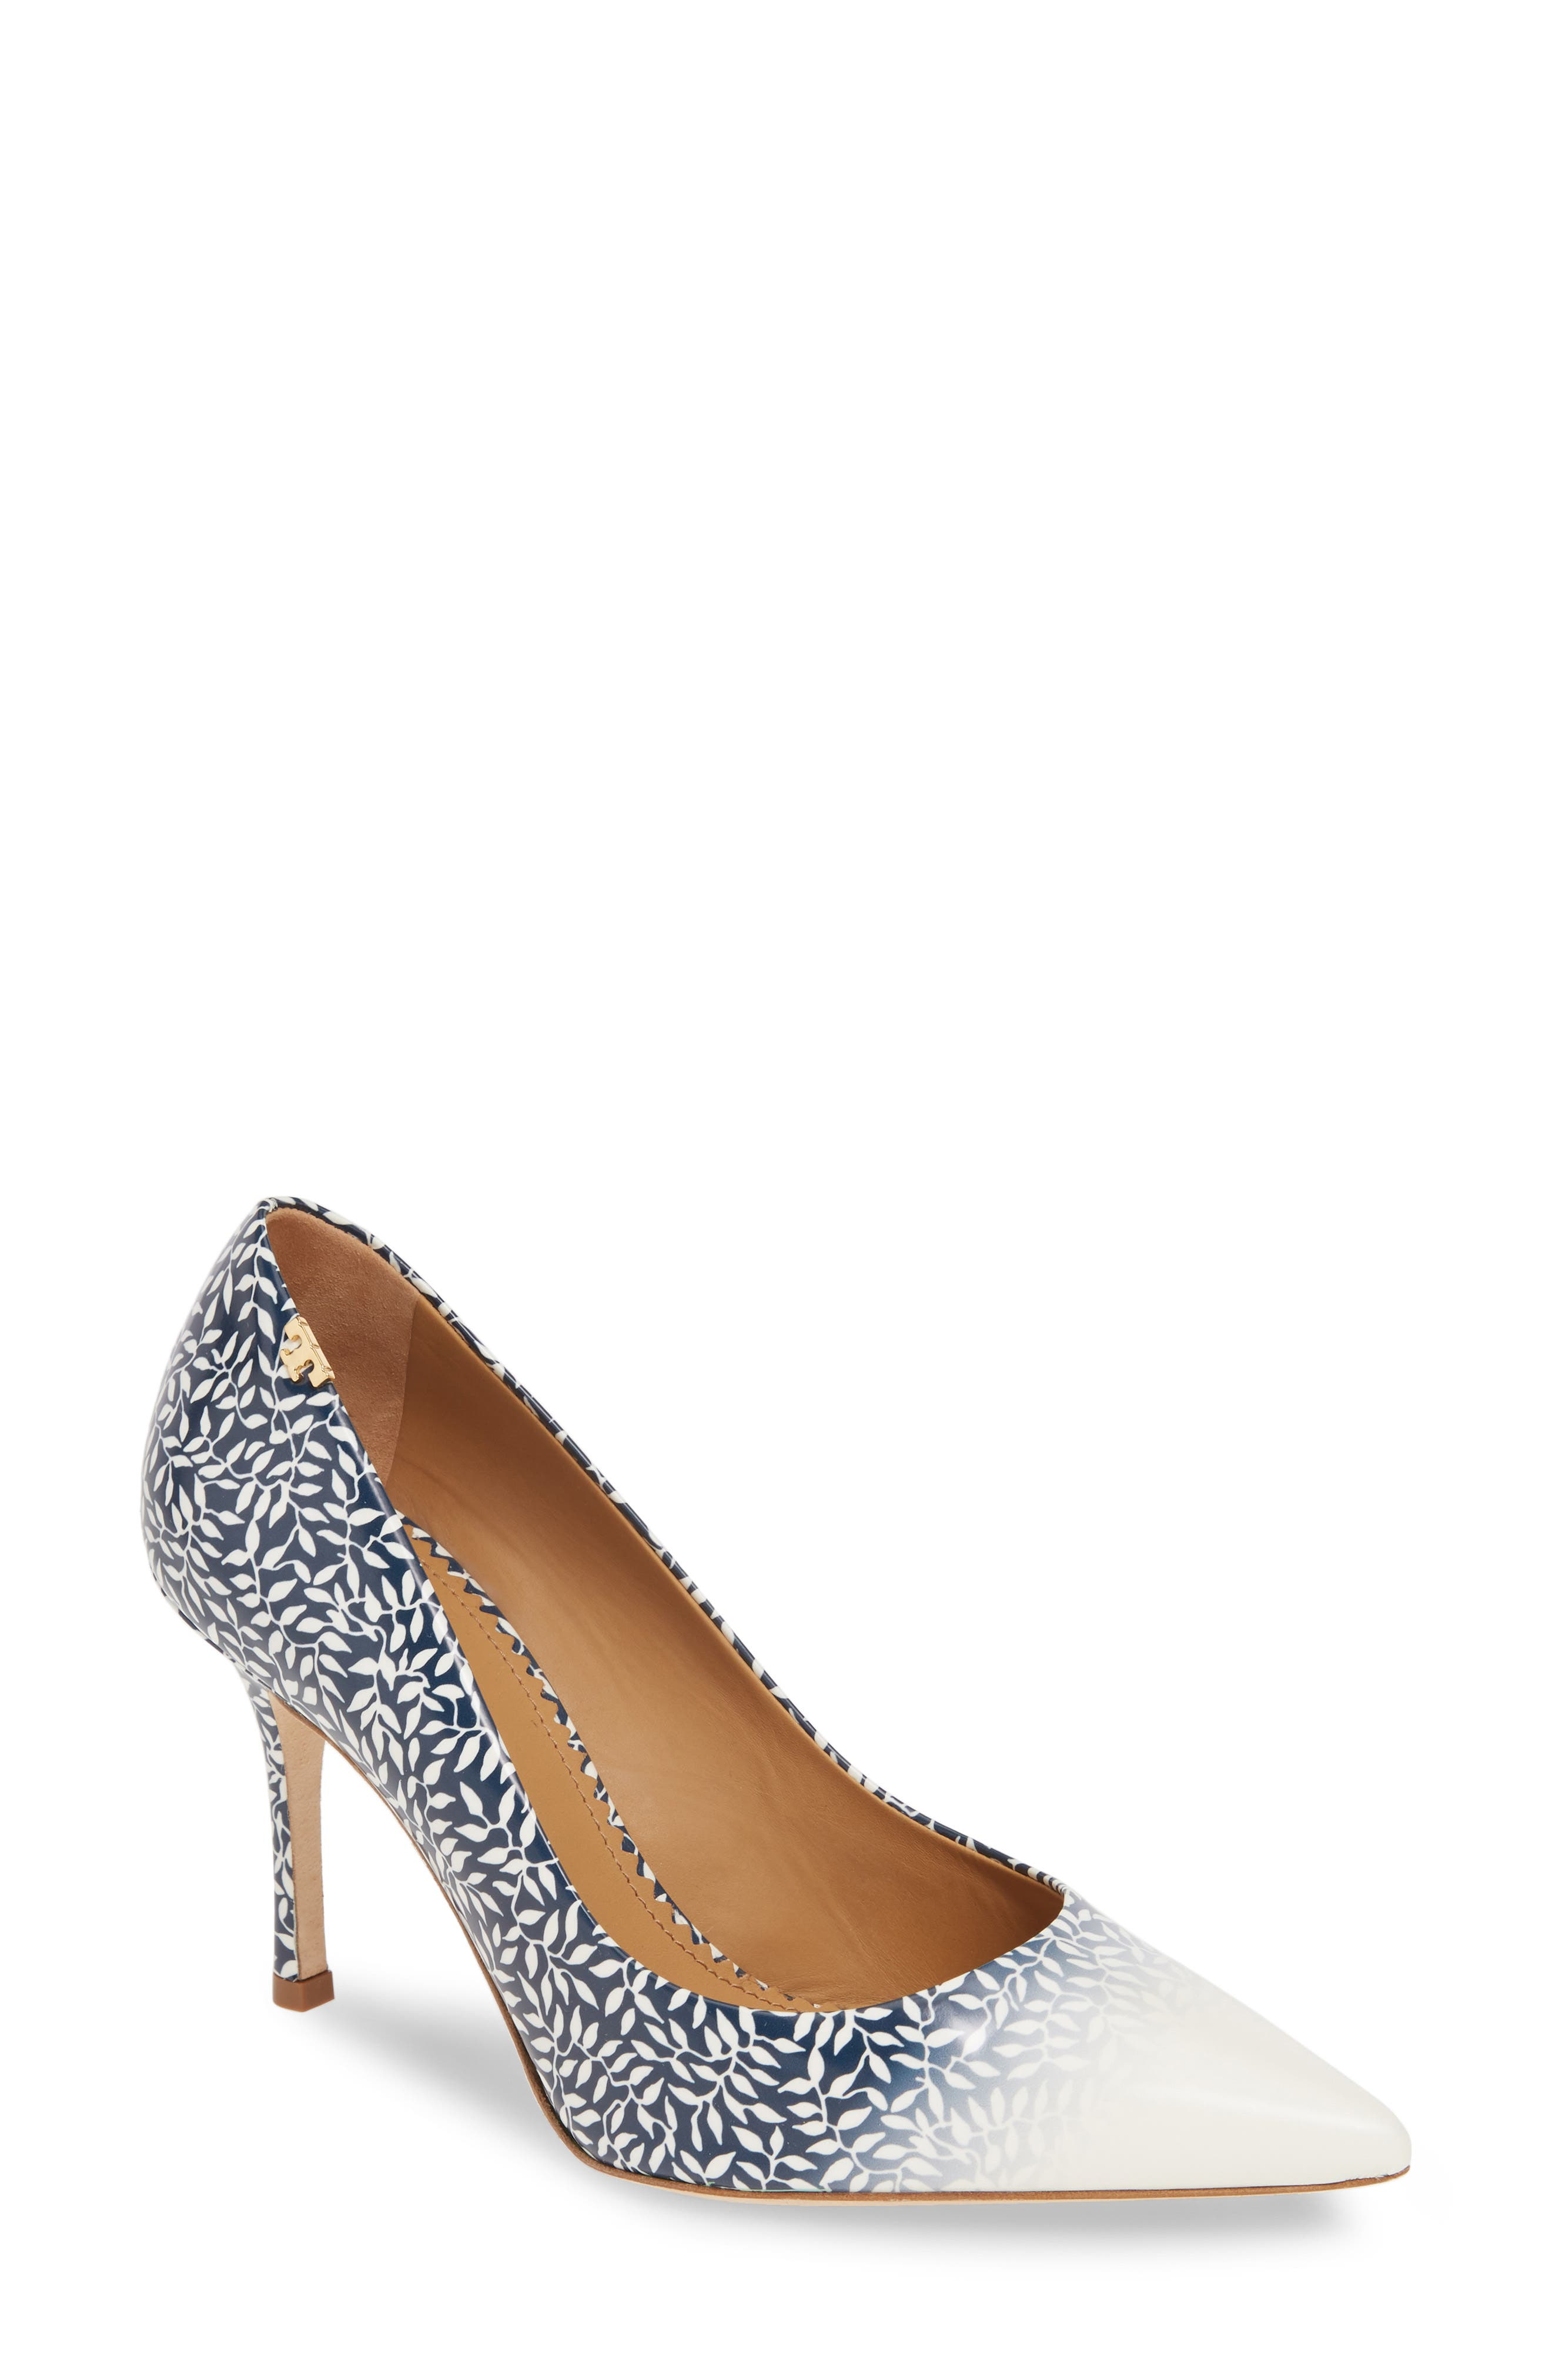 Tory Burch Penelope Ombre Pointy Toe Pump, Black